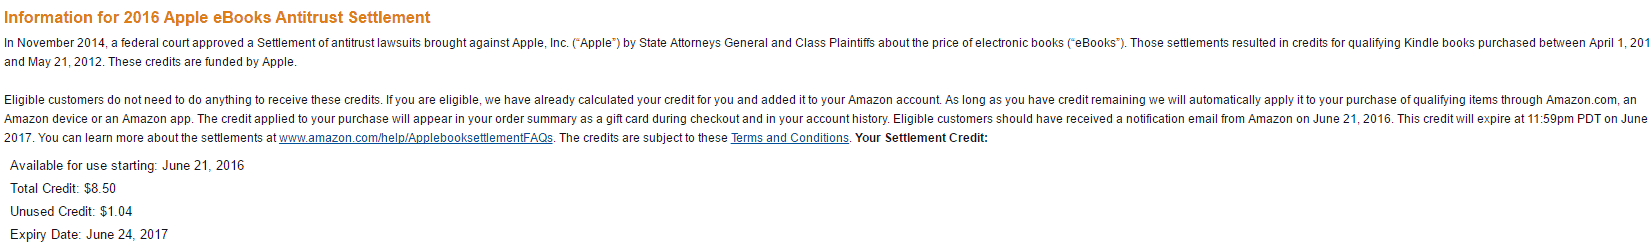 amazon-lawsuit-credit